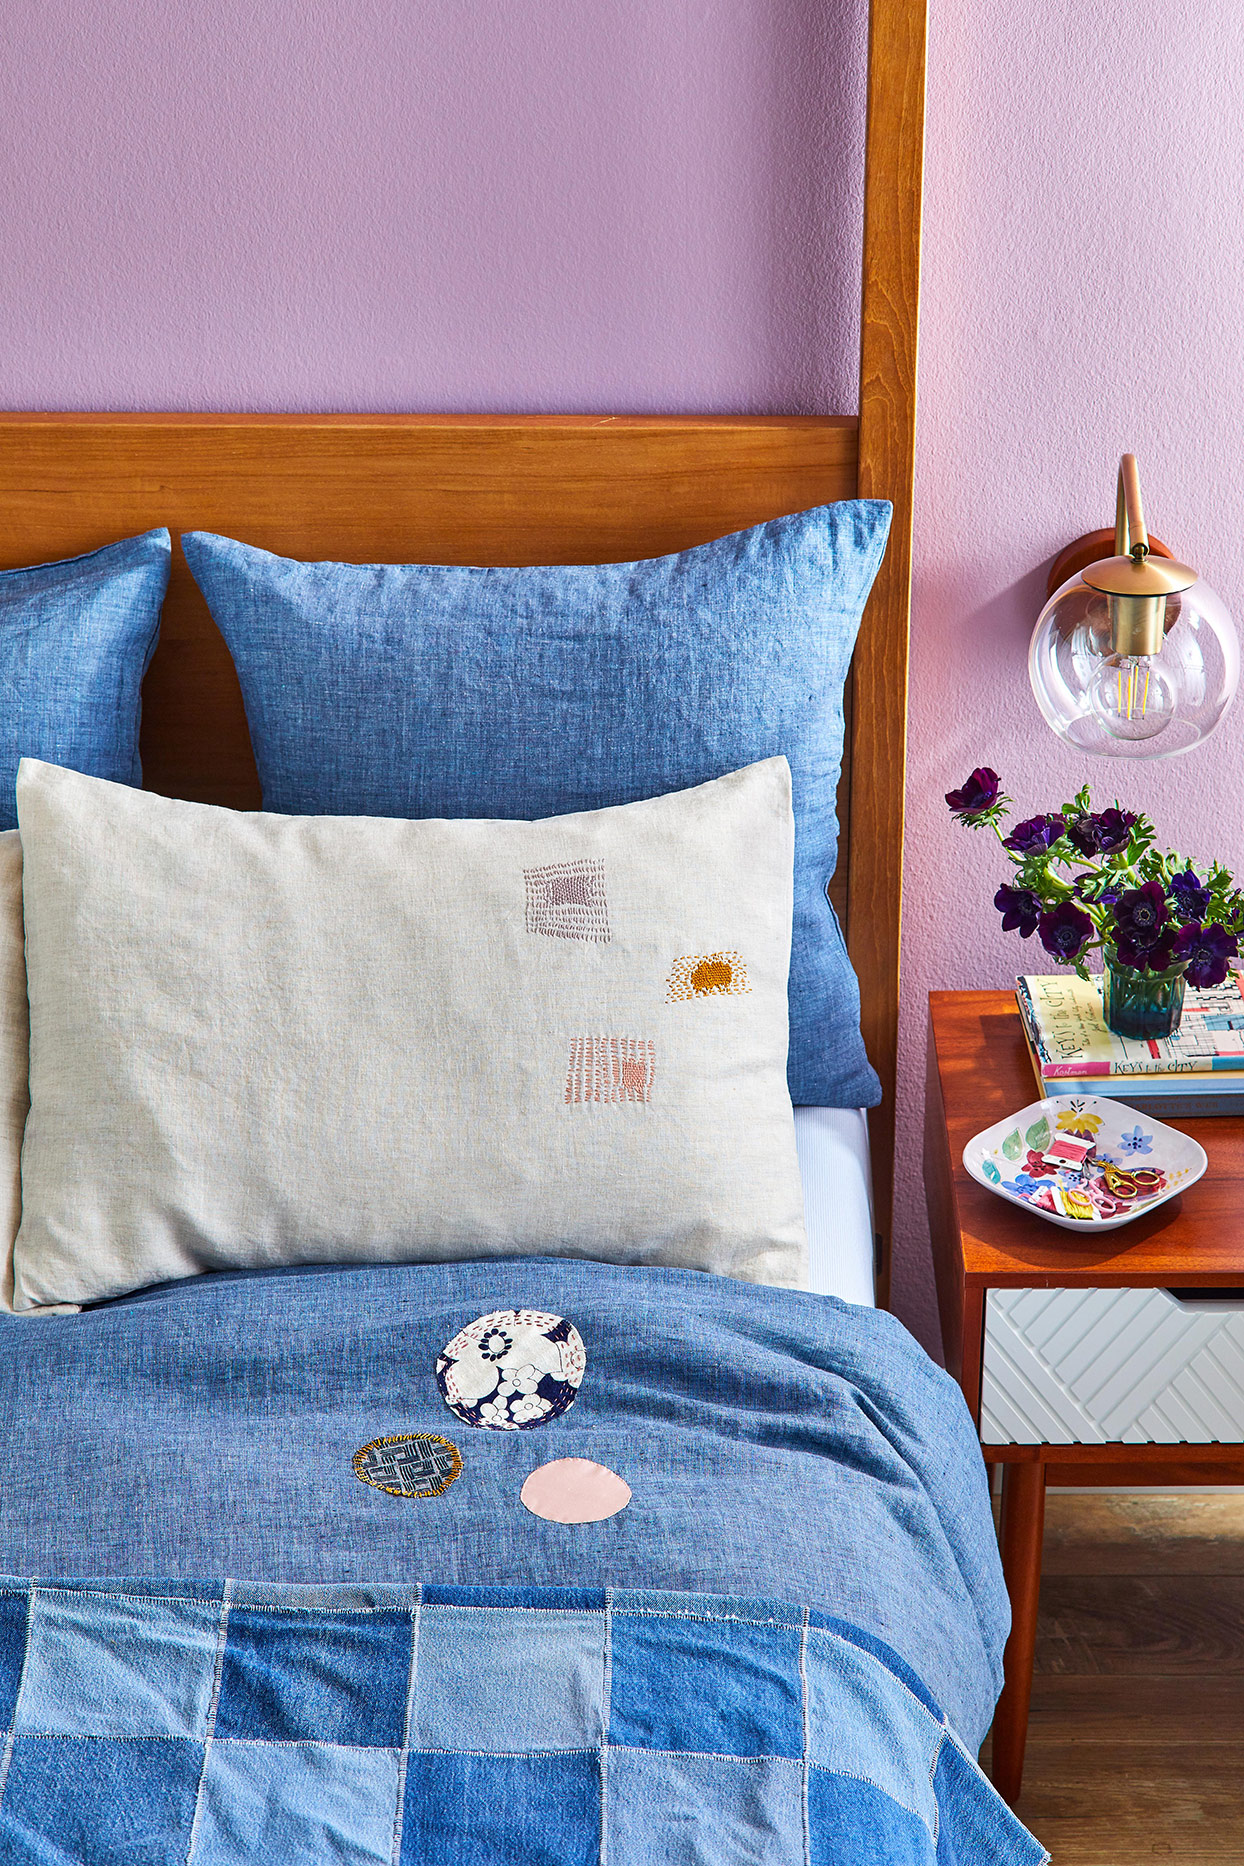 lavender bedroom with quilted blue bed spread